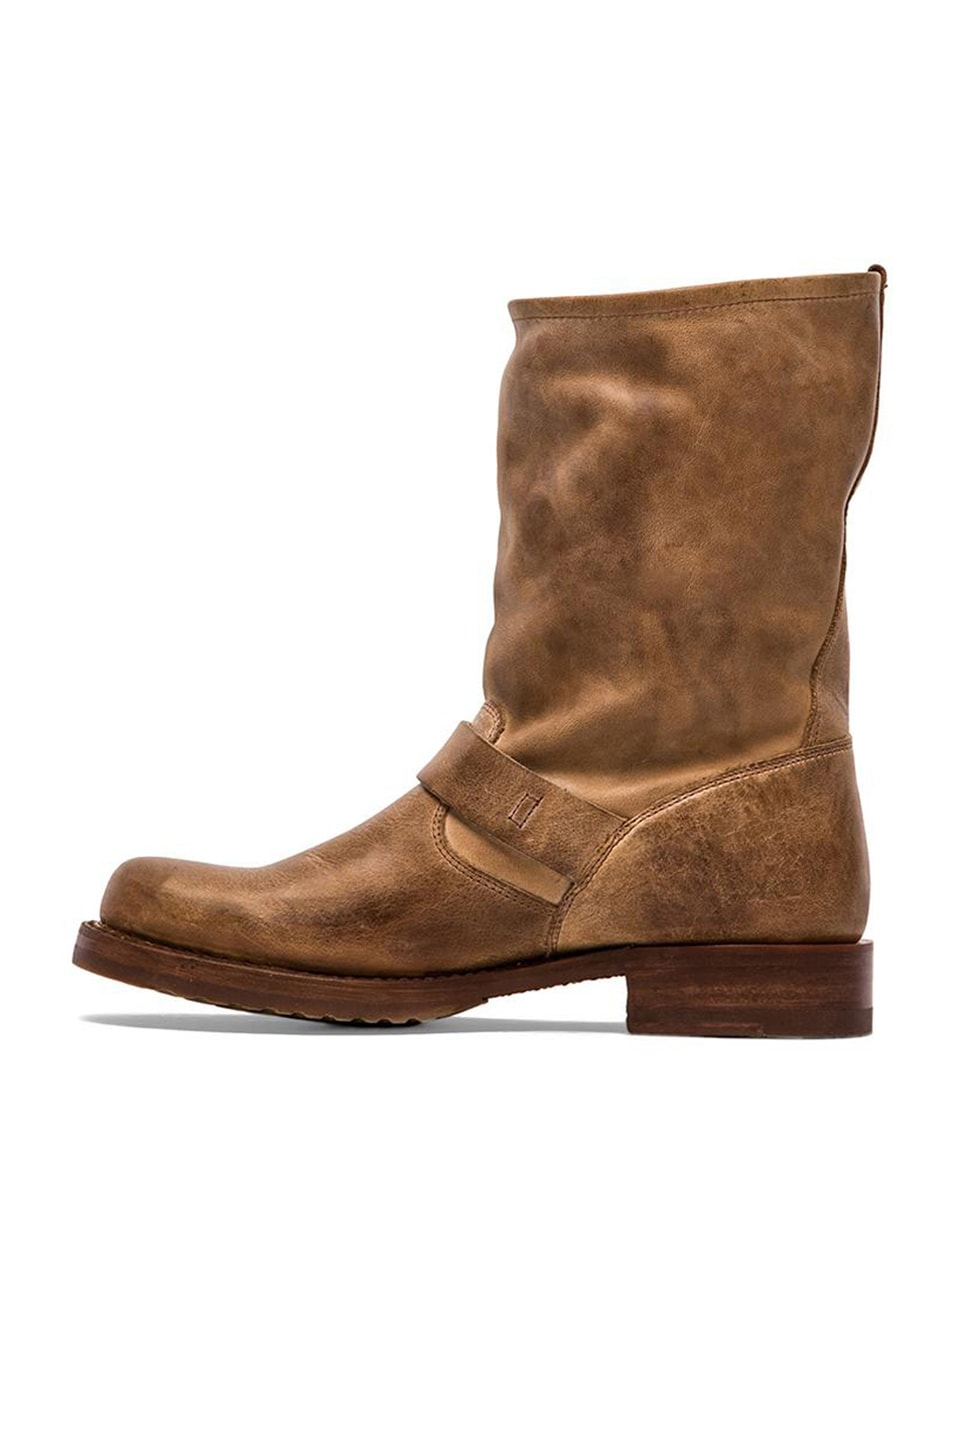 Frye Veronica Short Boot in Tan